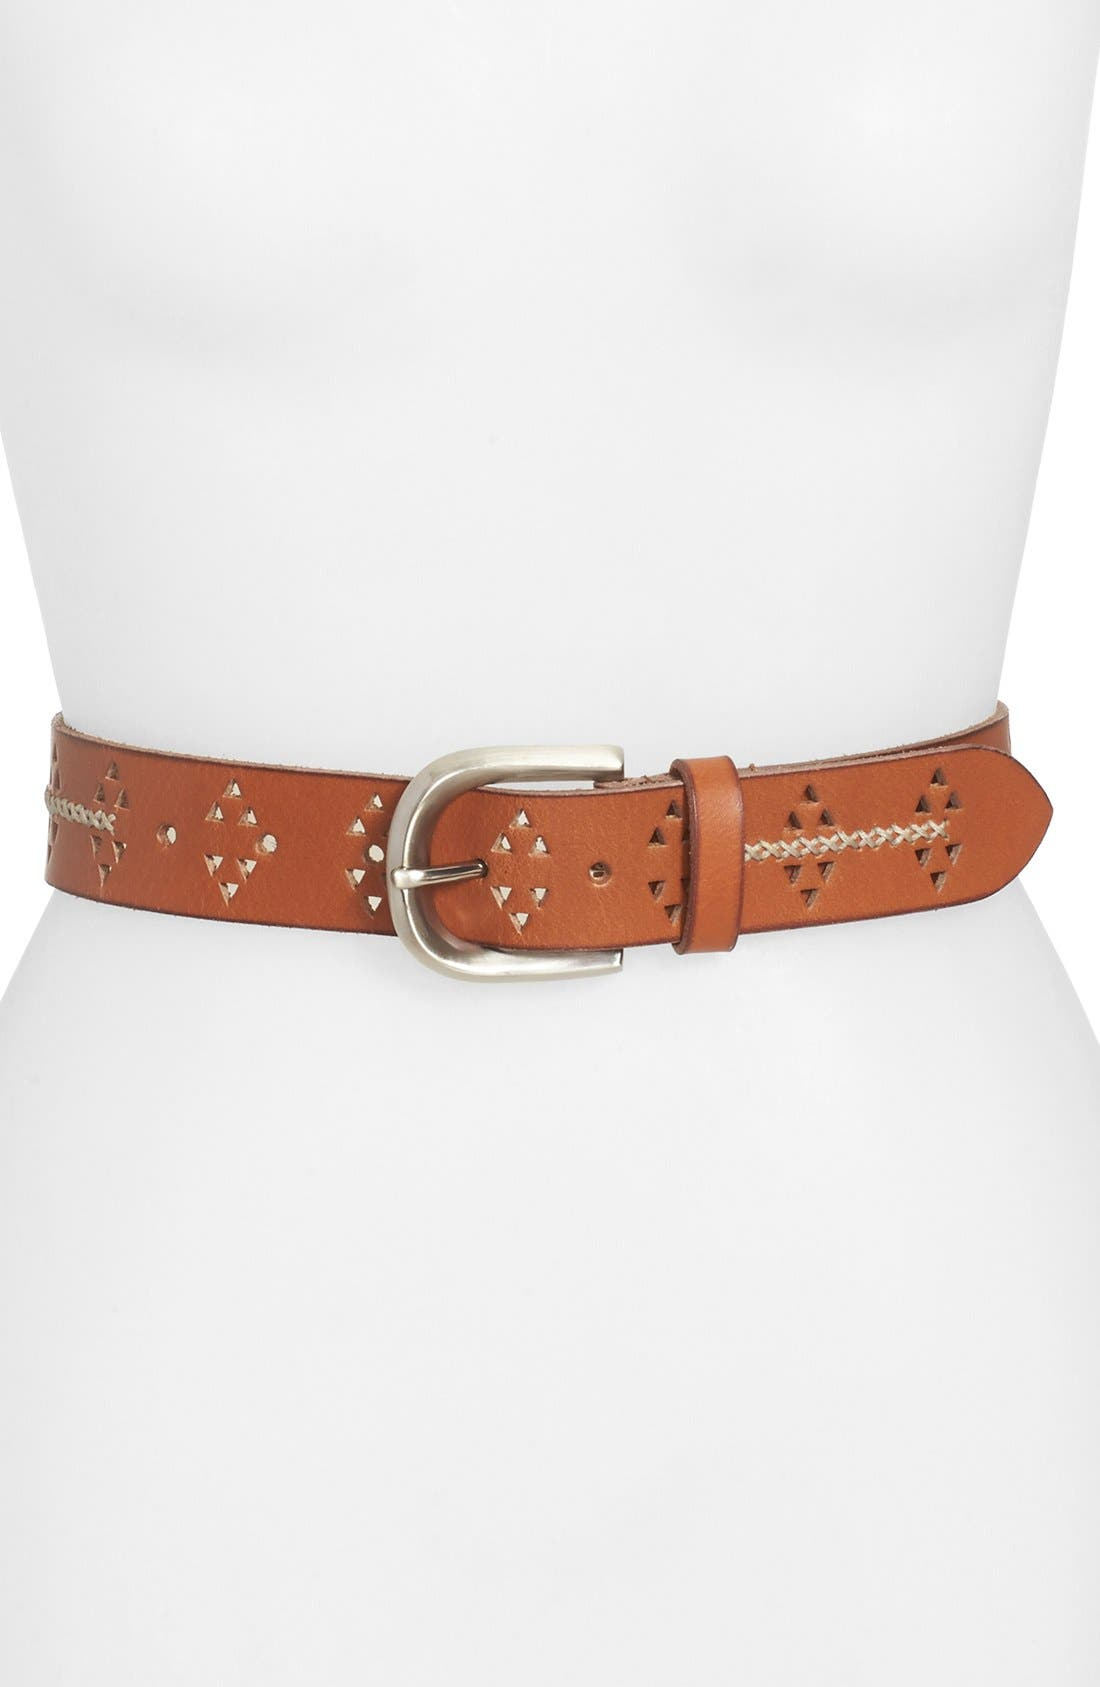 Alternate Image 1 Selected - Lucky Brand Cutout Leather Belt